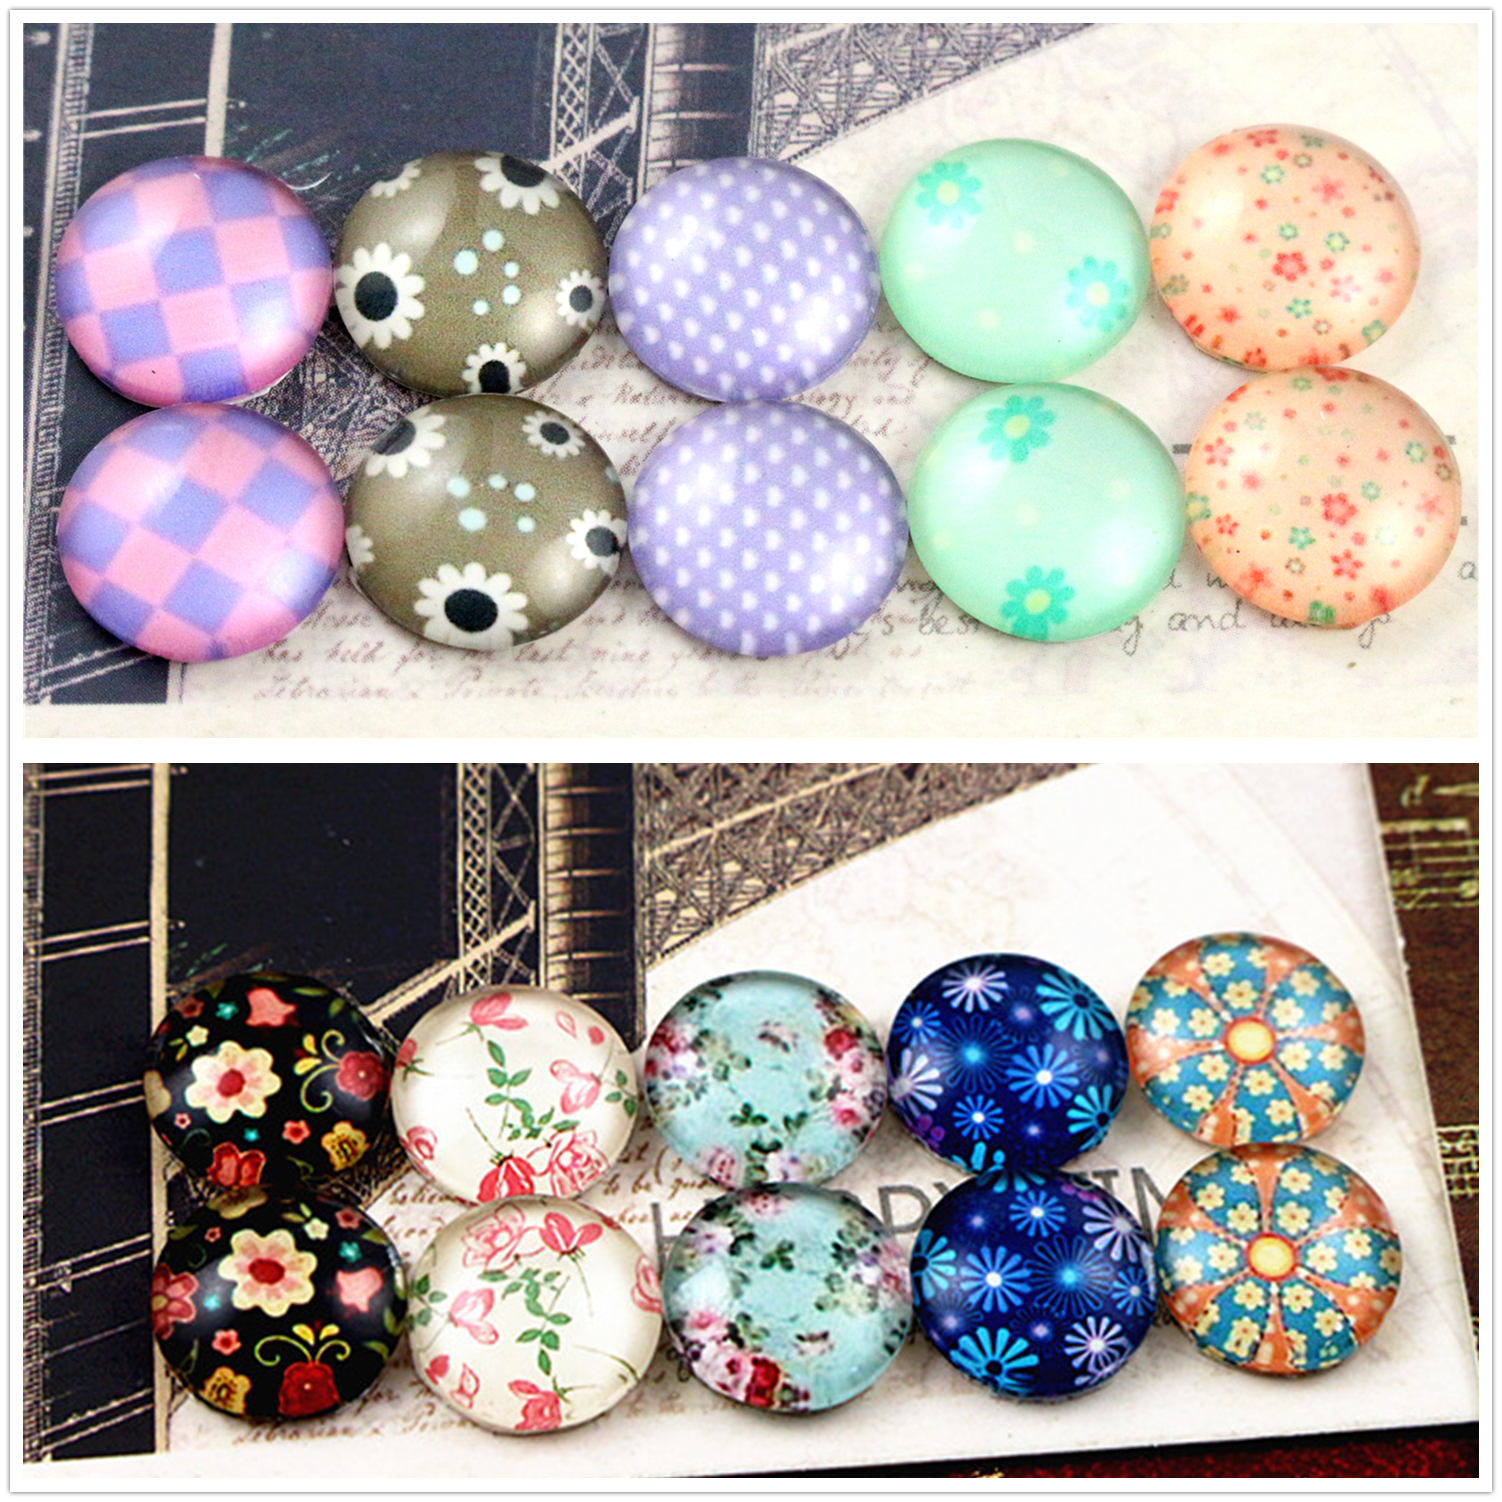 10pcs/lot (One Set) Two Style Fit 12mm Elegant Flower Handmade Glass Cabochons Pattern Domed Jewelry Accessories Supplie